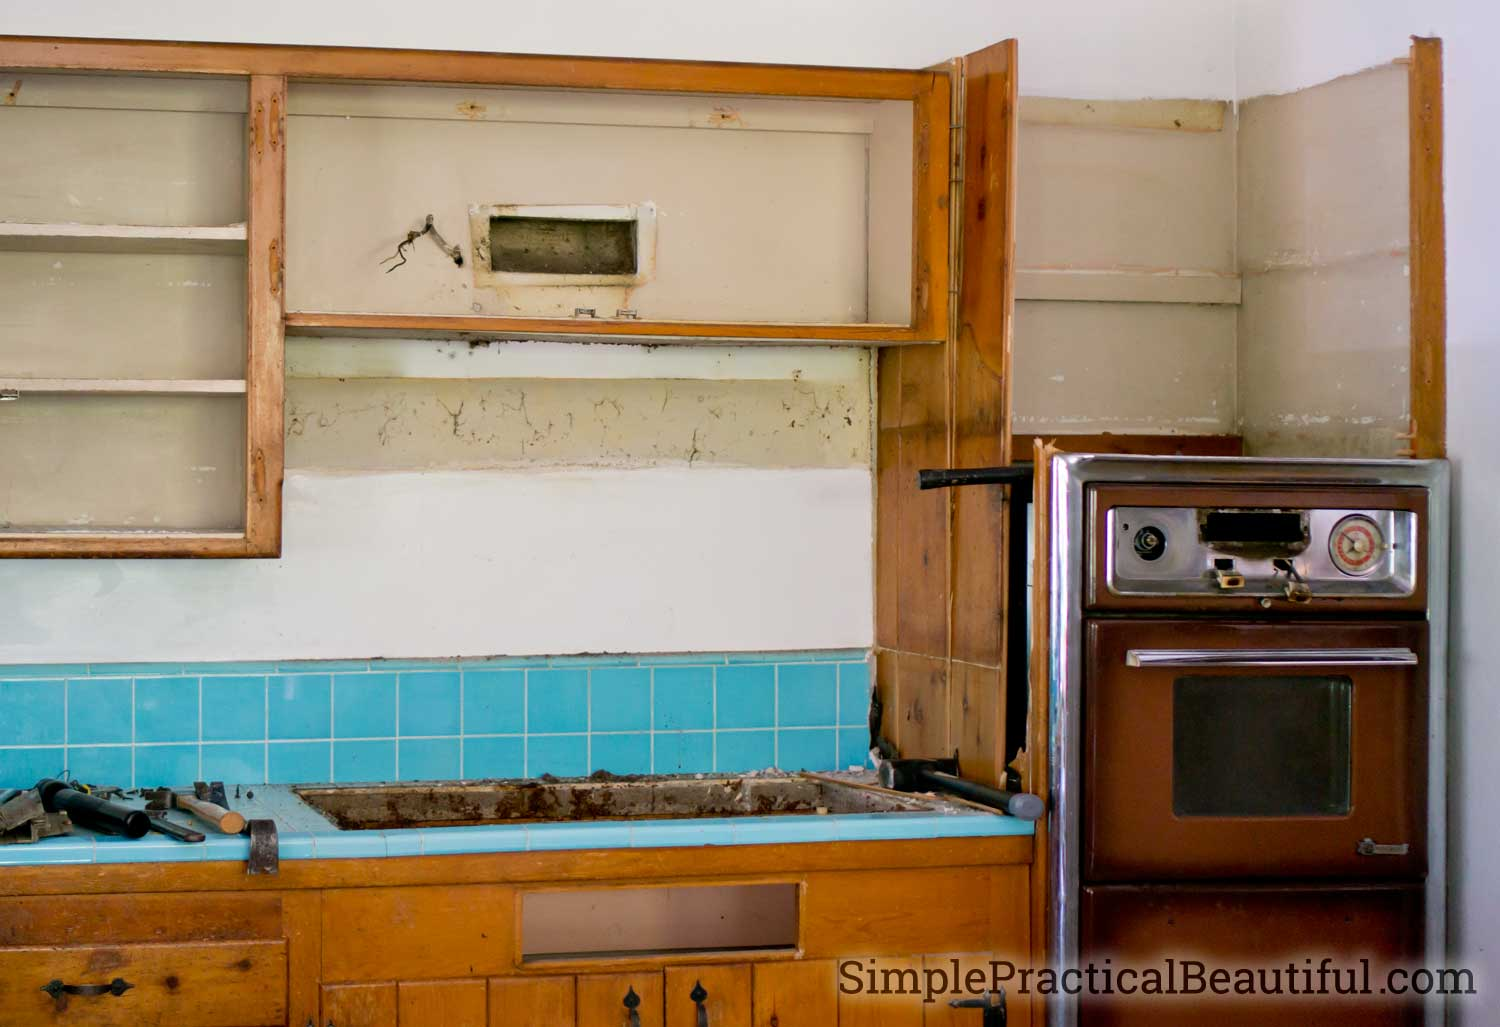 removing the cabinets around a vintage oven and gas cooktop